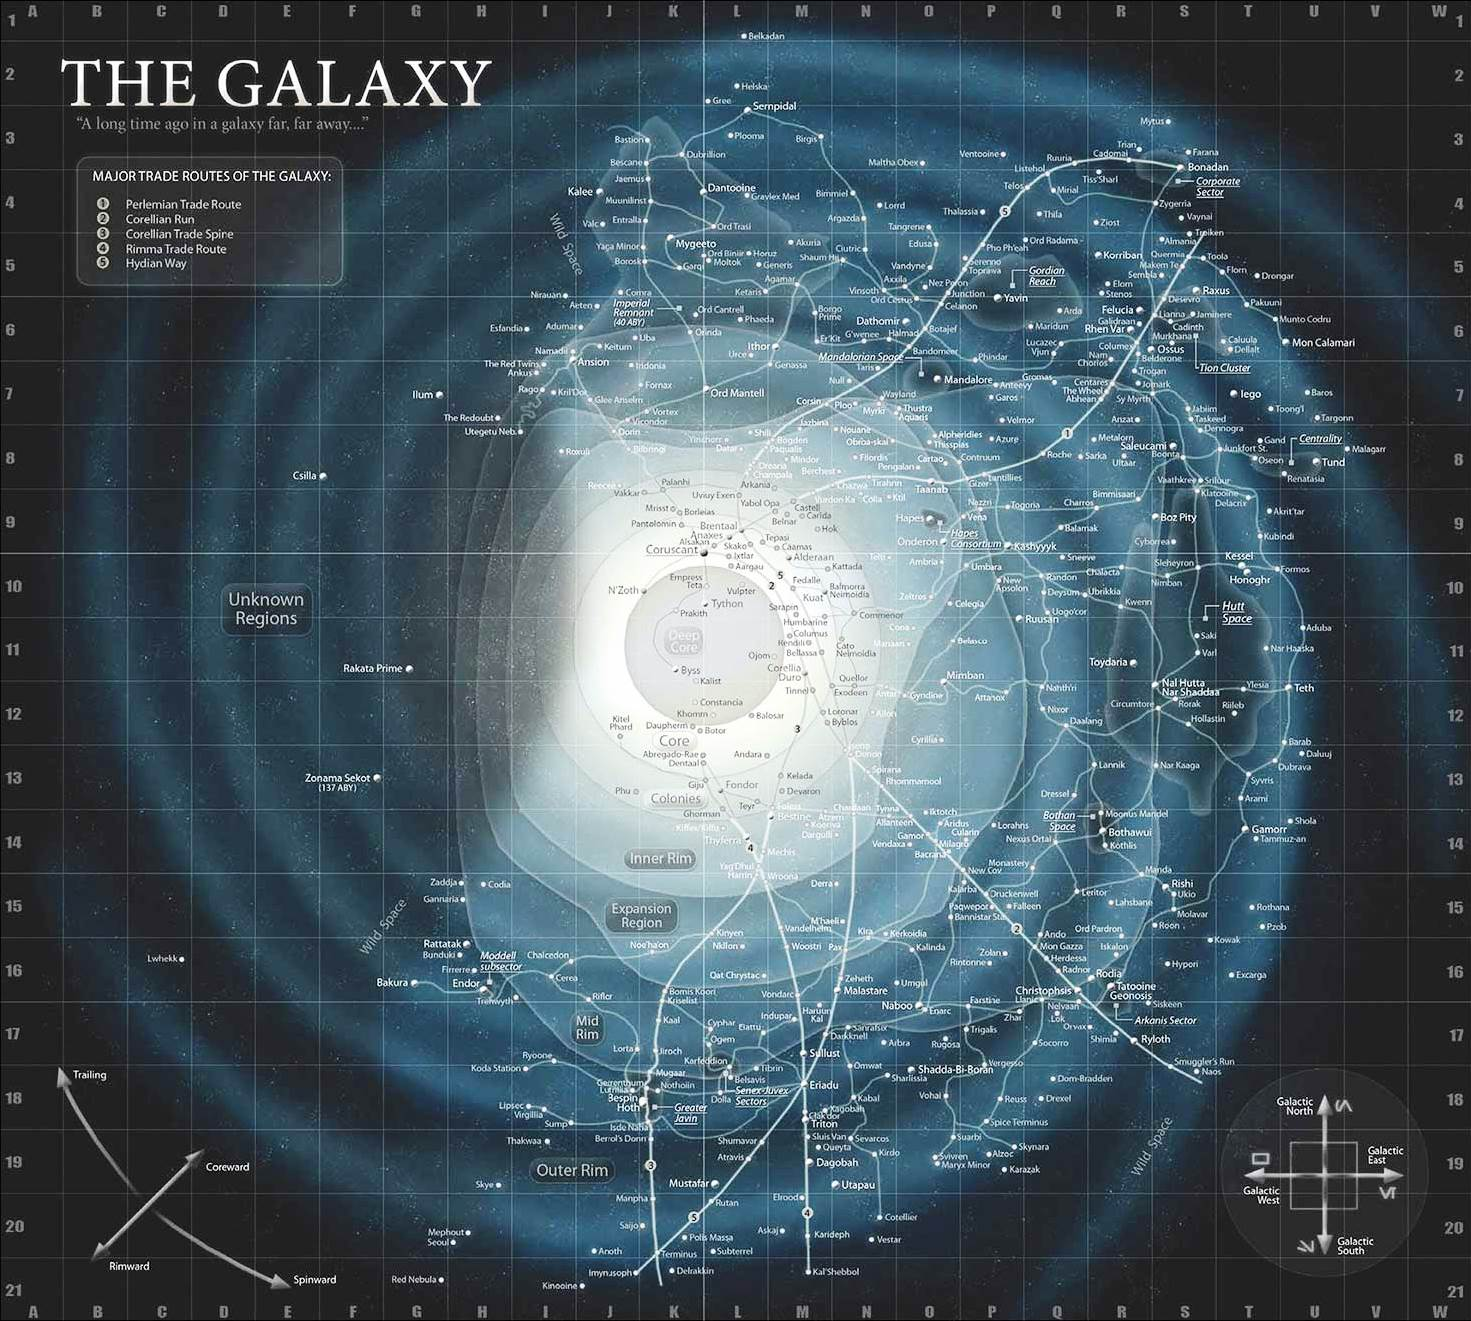 Star Wars Universe Map The galaxy | Wookieepedia | FANDOM powered by Wikia